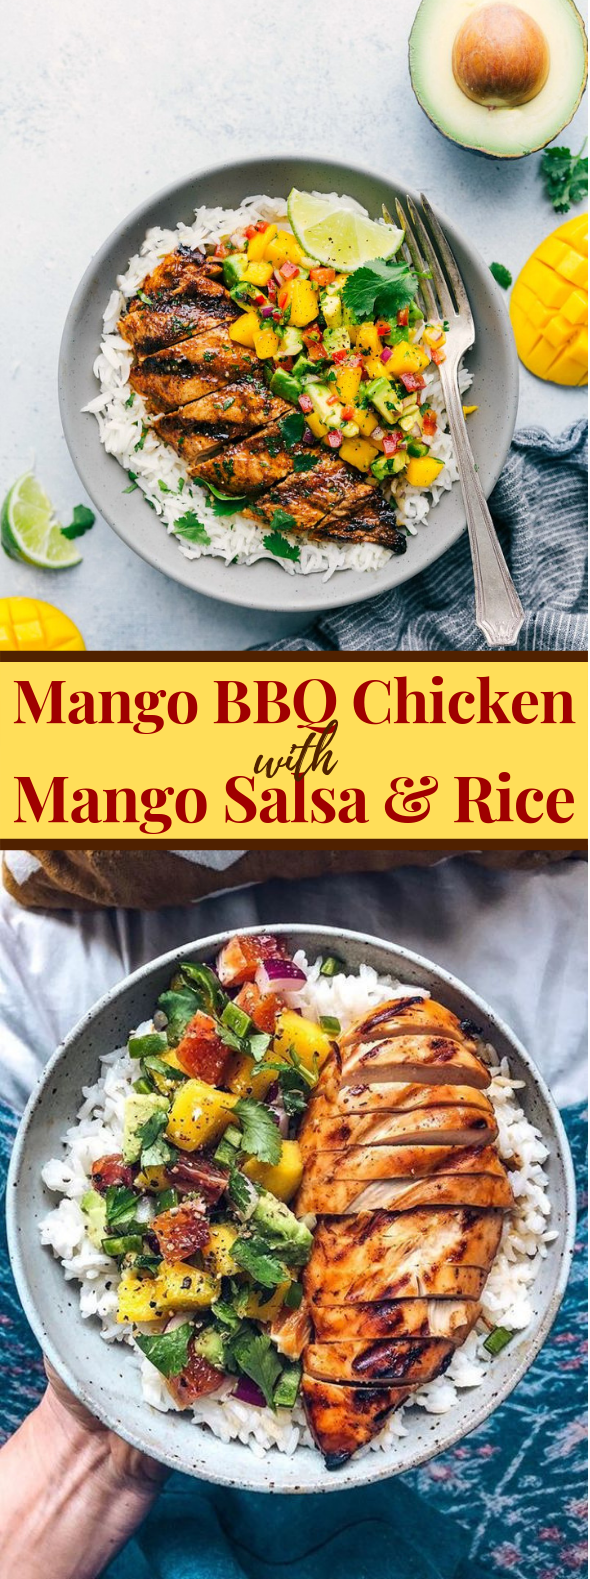 Mango BBQ Chicken with Mango Salsa and Rice #dinner #meals